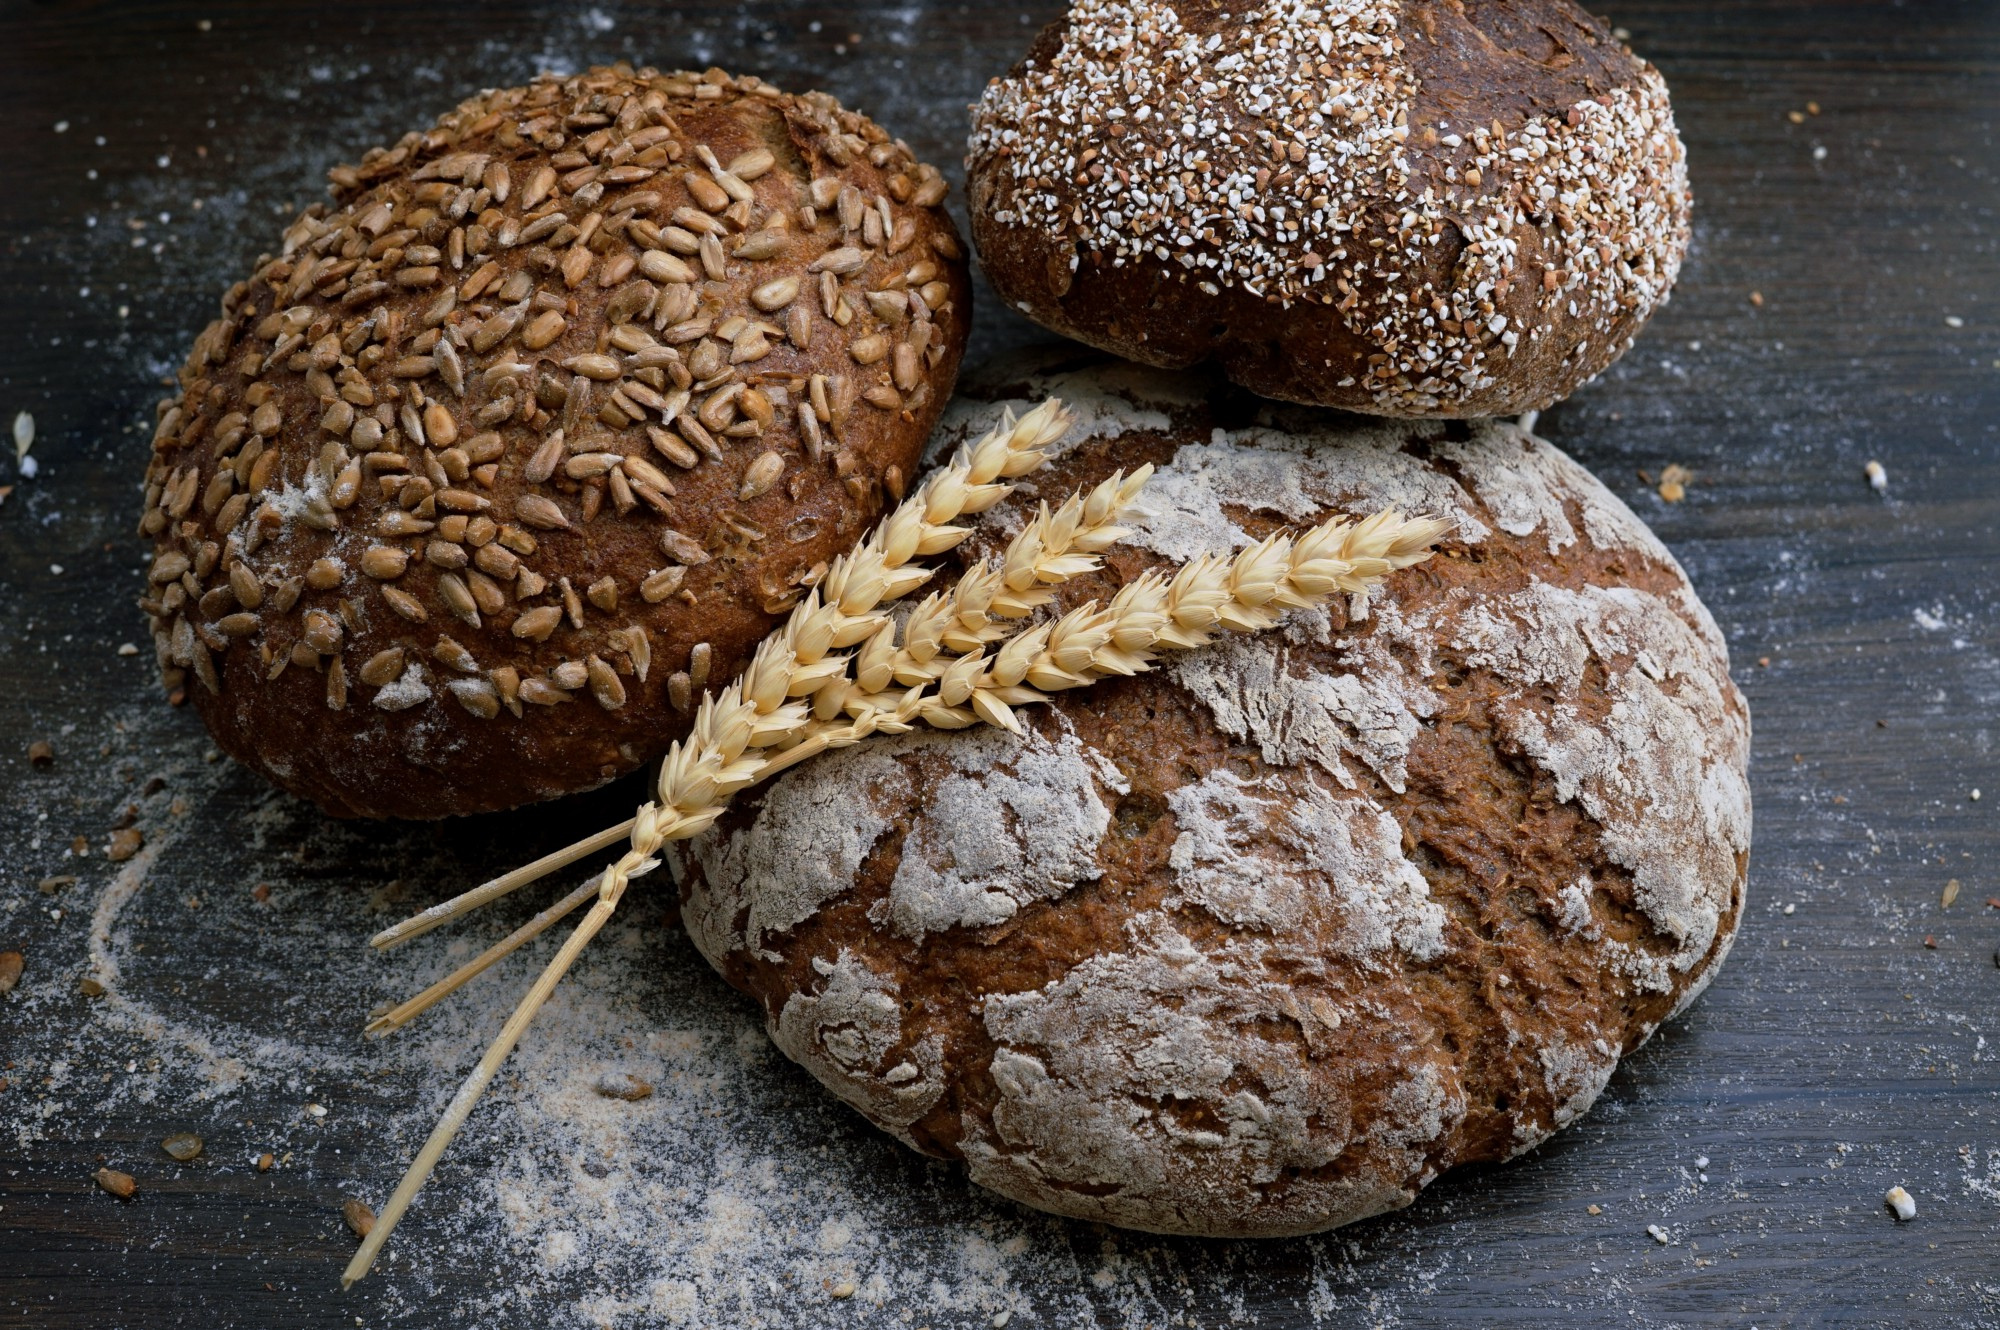 Three different kinds of round artisan bread on a lightly floured  table with three tassels of wheat laid crisscrossed on top artistically.